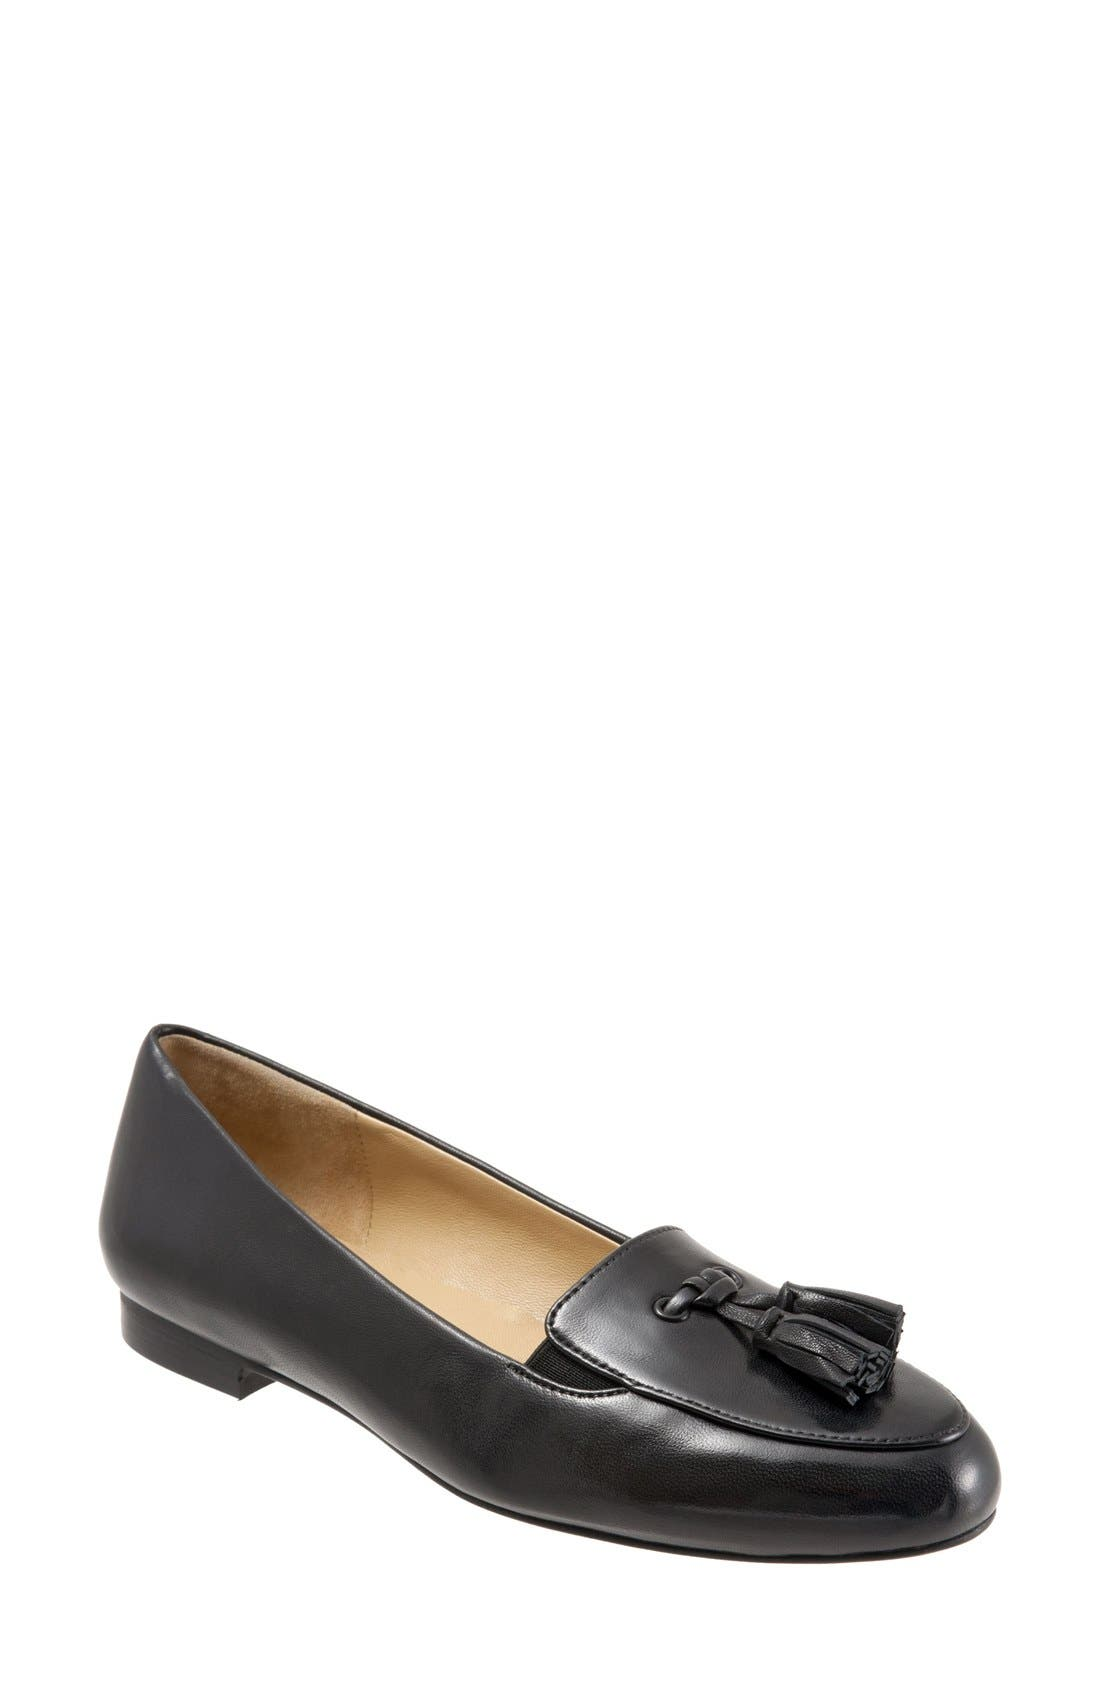 'Caroline' Tassel Loafer,                             Main thumbnail 1, color,                             BLACK LEATHER